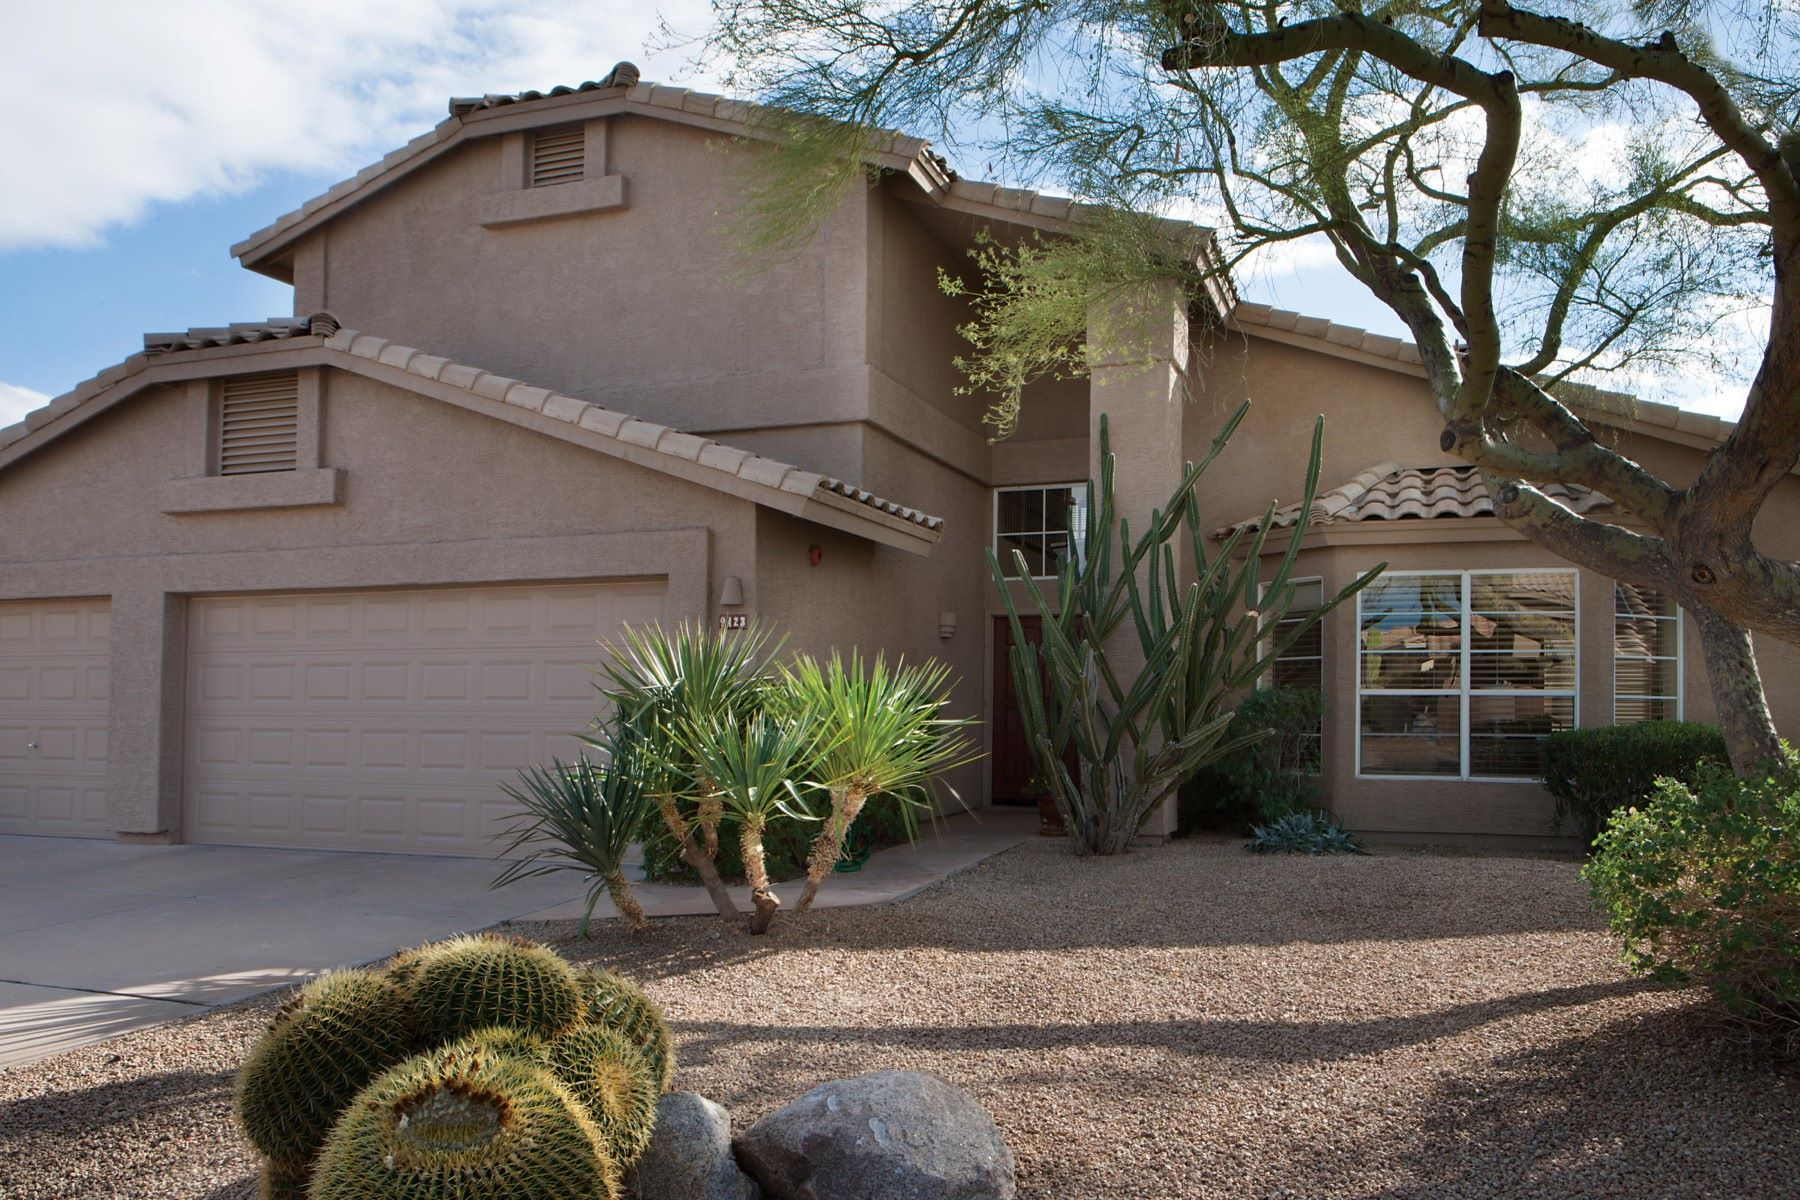 獨棟家庭住宅 為 出售 在 Immaculately maintained Ironwood Village 9423 E Rosemonte Dr Scottsdale, 亞利桑那州, 85255 美國